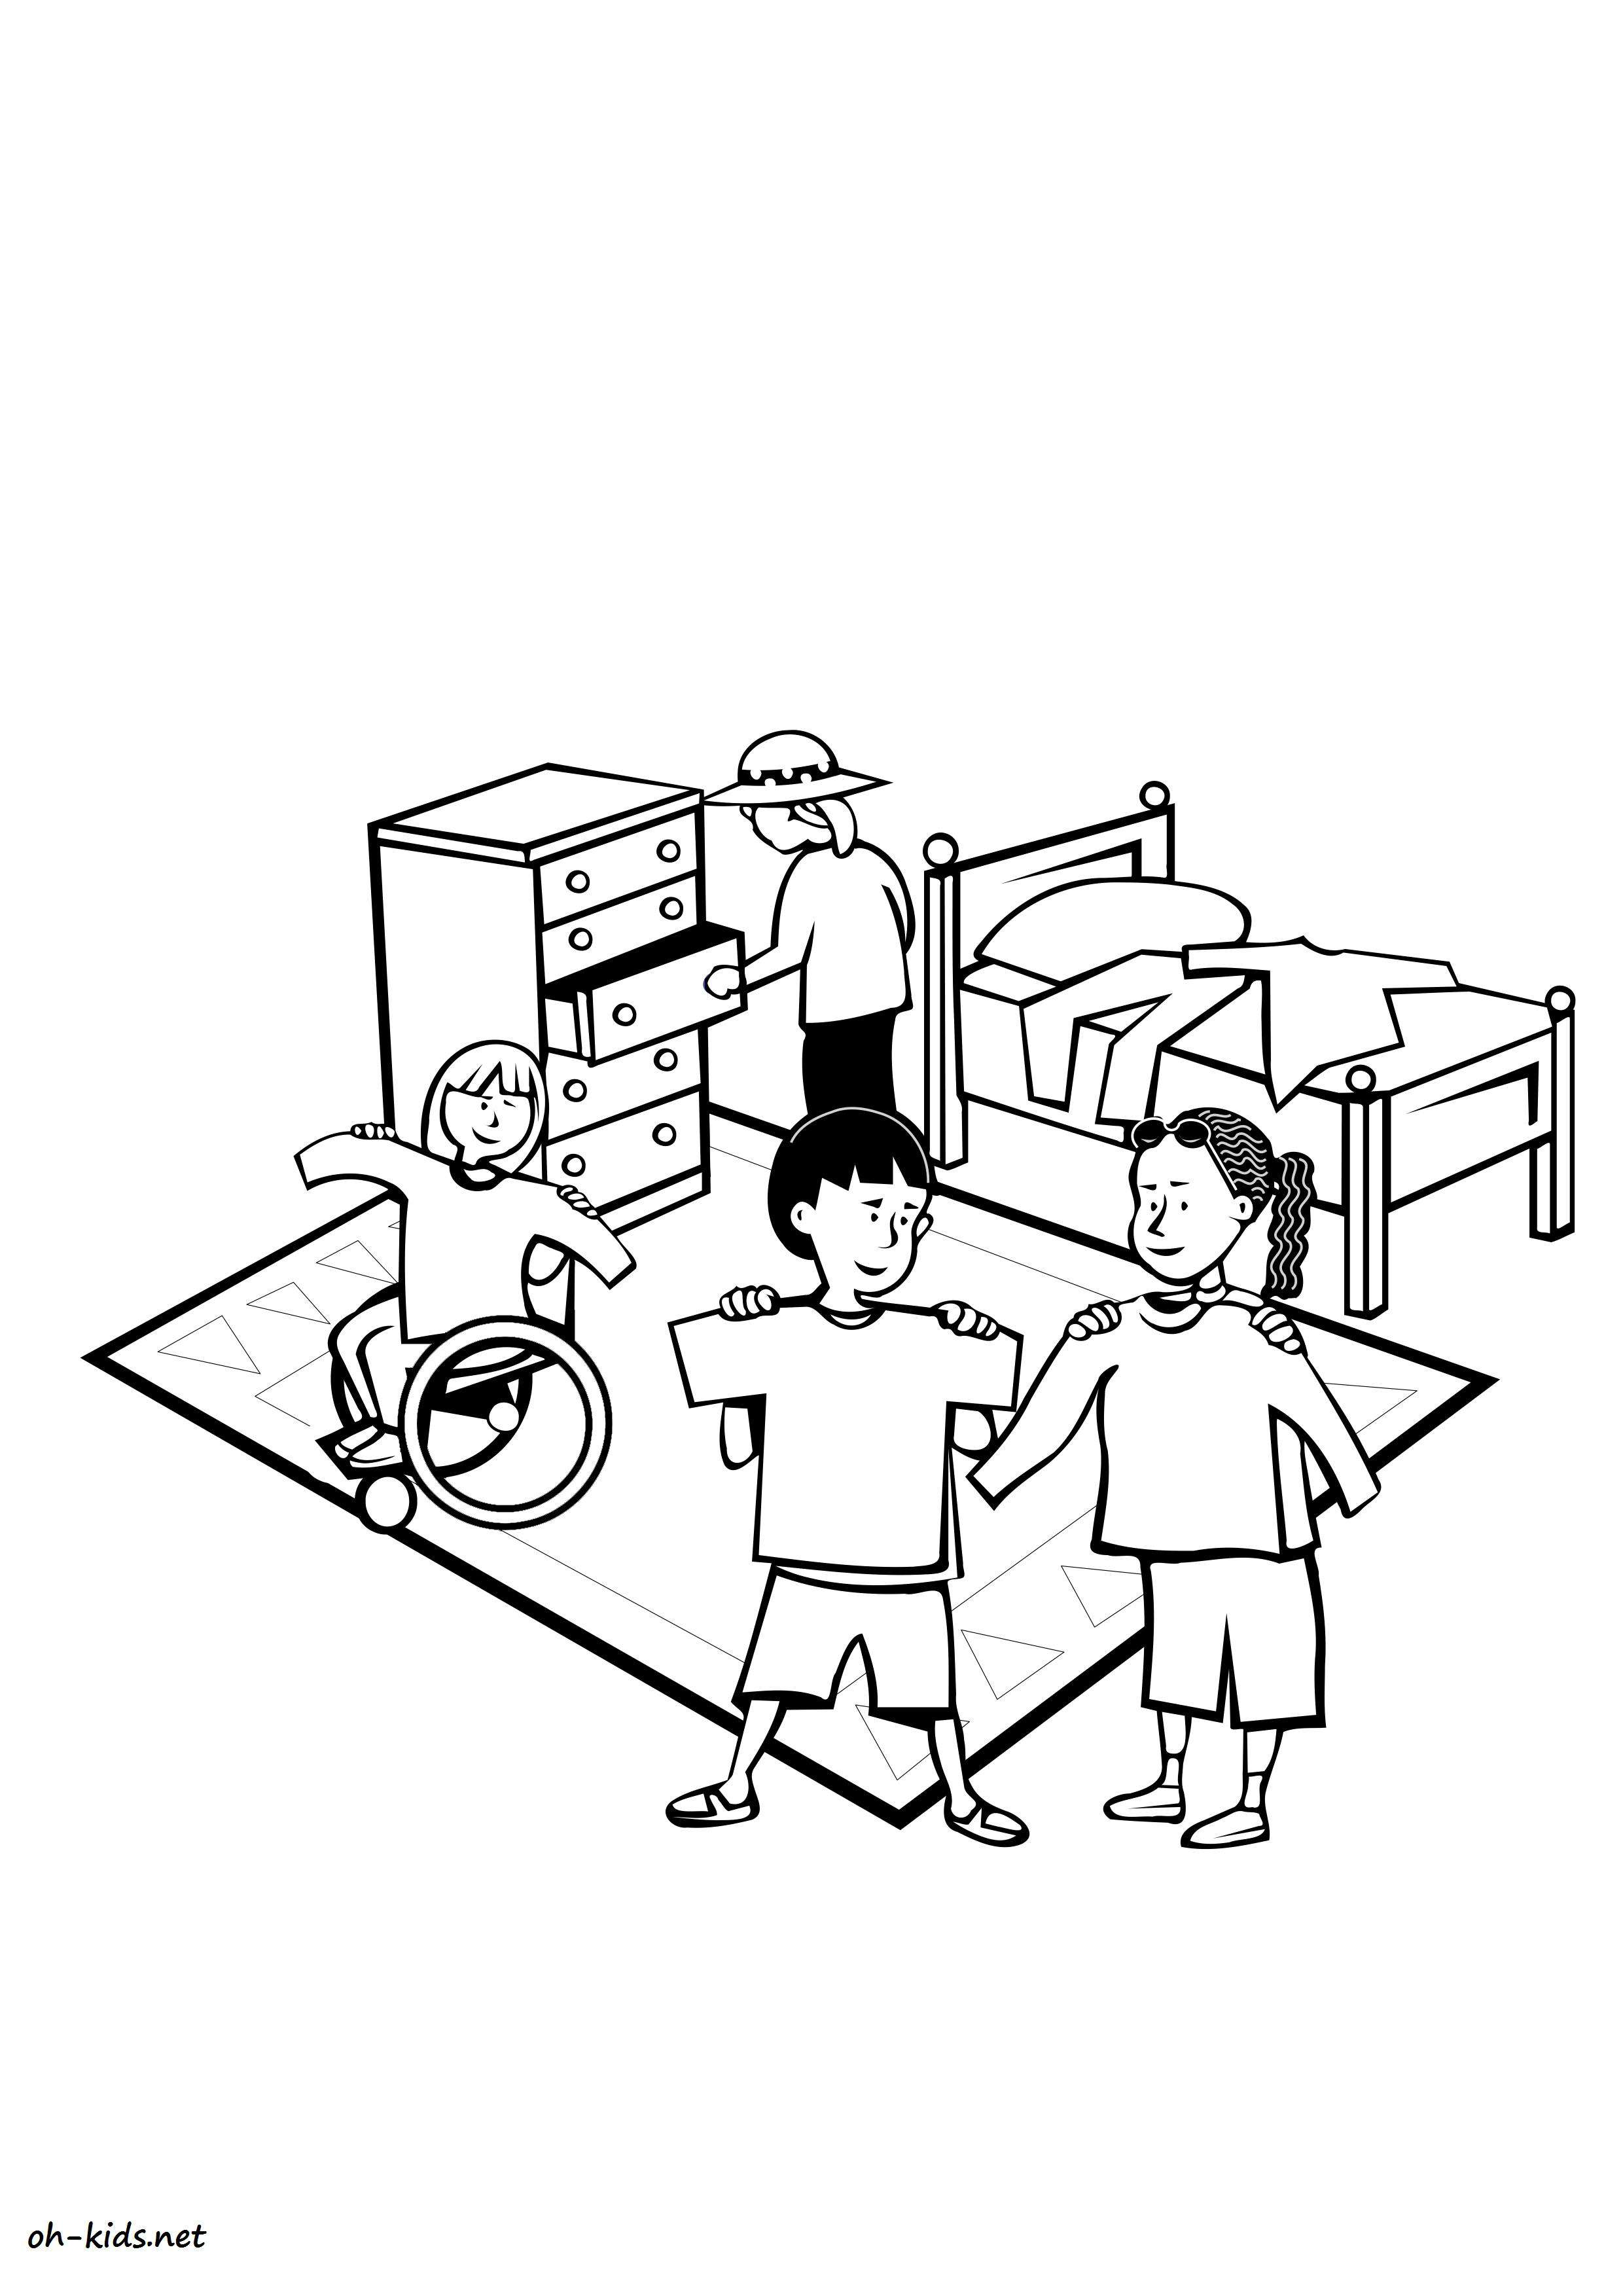 coloriage chambre page 2 of 2 oh kids fr. Black Bedroom Furniture Sets. Home Design Ideas